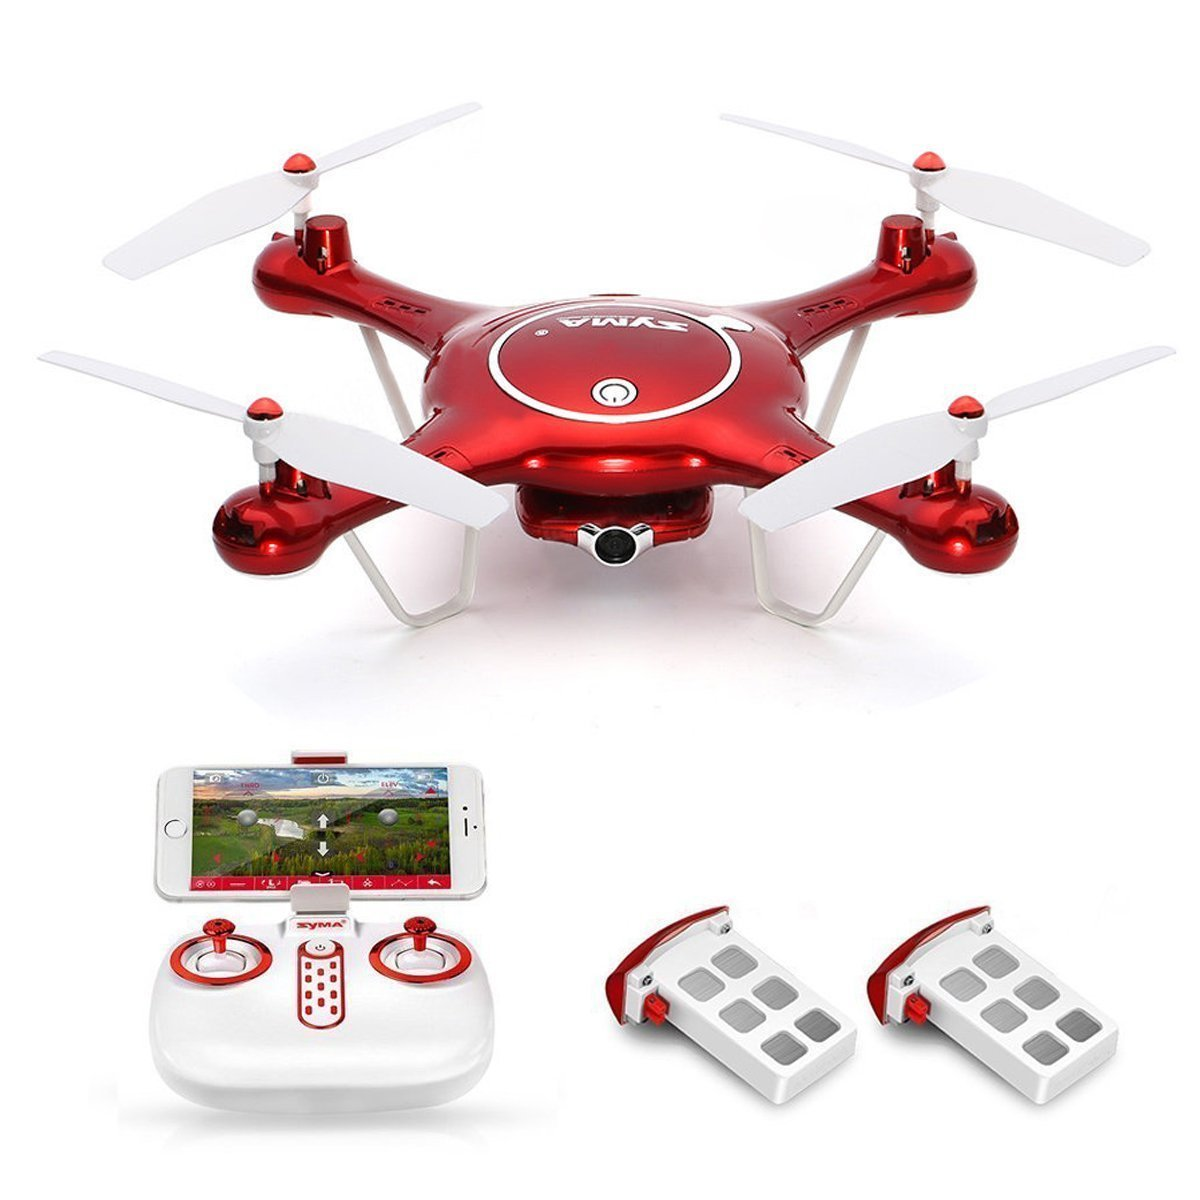 Syma X5UW Wifi FPV Drone with 720P HD Camera Live Video, Barometer Set Height, H/L Speed+ 2pcs Extra Battery RTF RC Quadcopter syma x8w fpv rc quadcopter drone with wifi camera 2 4g 6axis dron syma x8c 2mp camera rtf rc helicopter with 2 battery vs x101